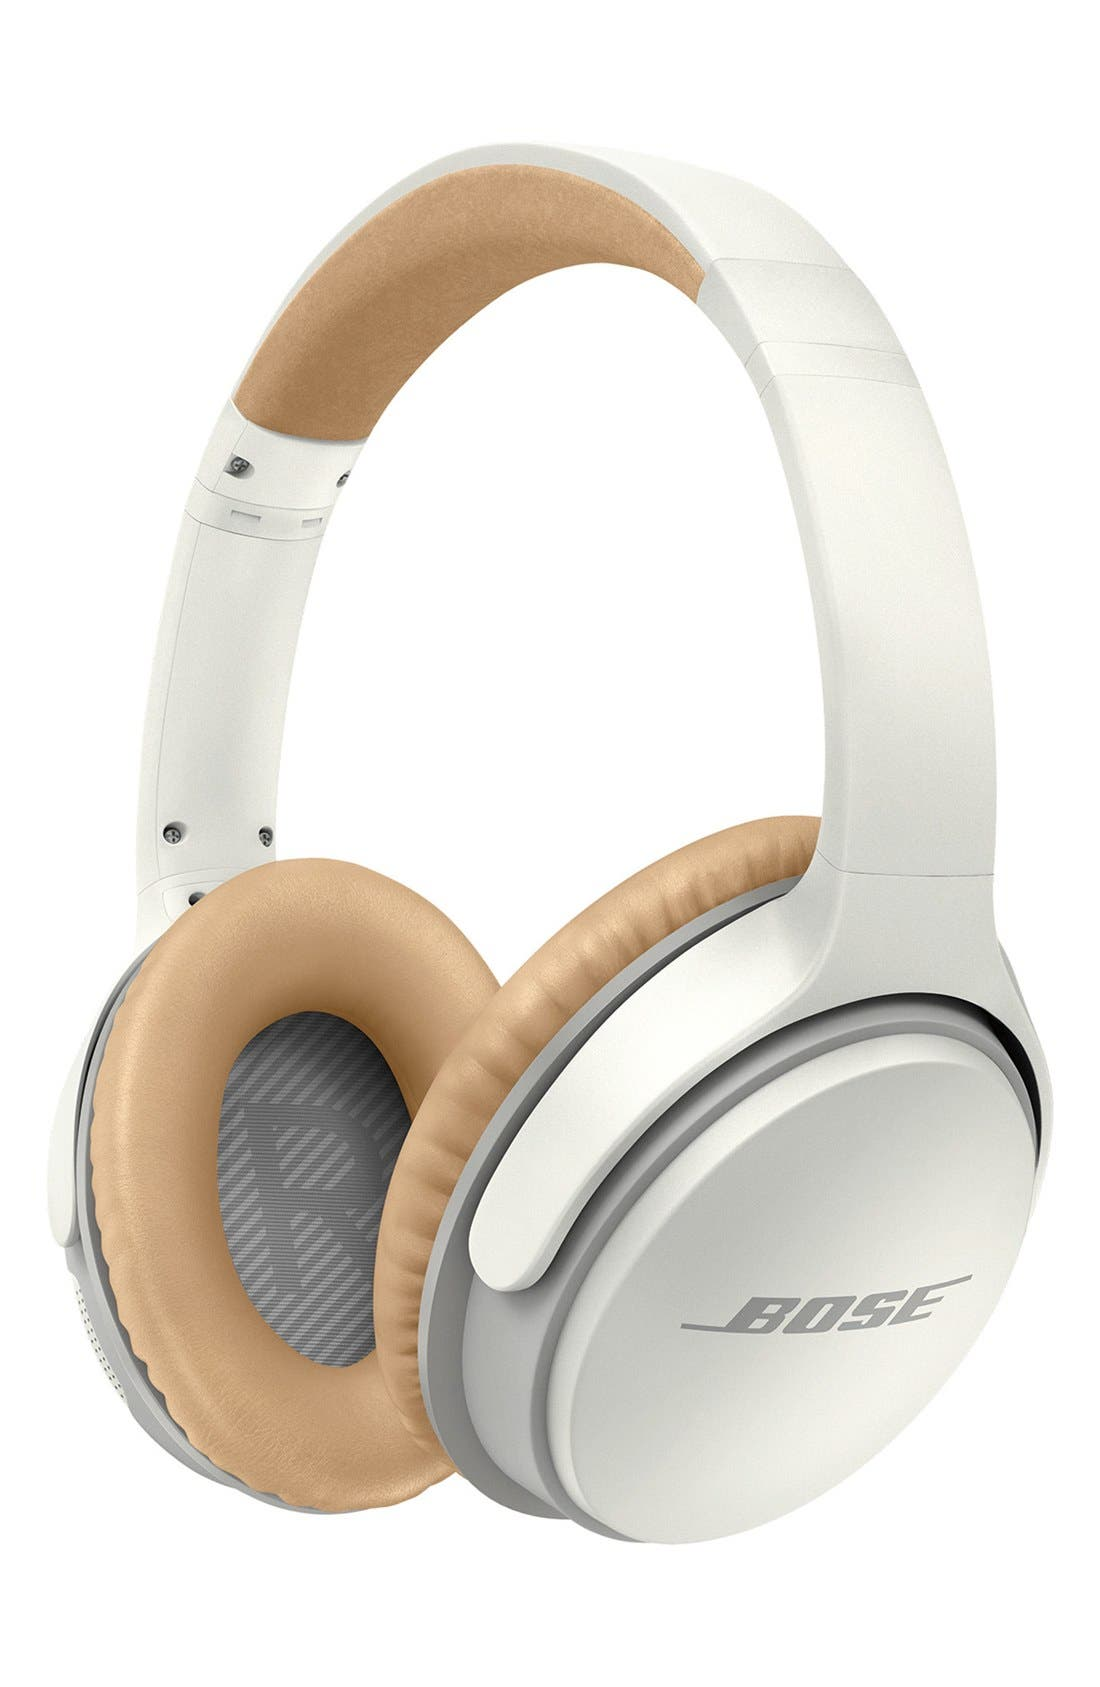 Main Image - Bose® SoundLink® II Around-Ear Bluetooth® Headphones